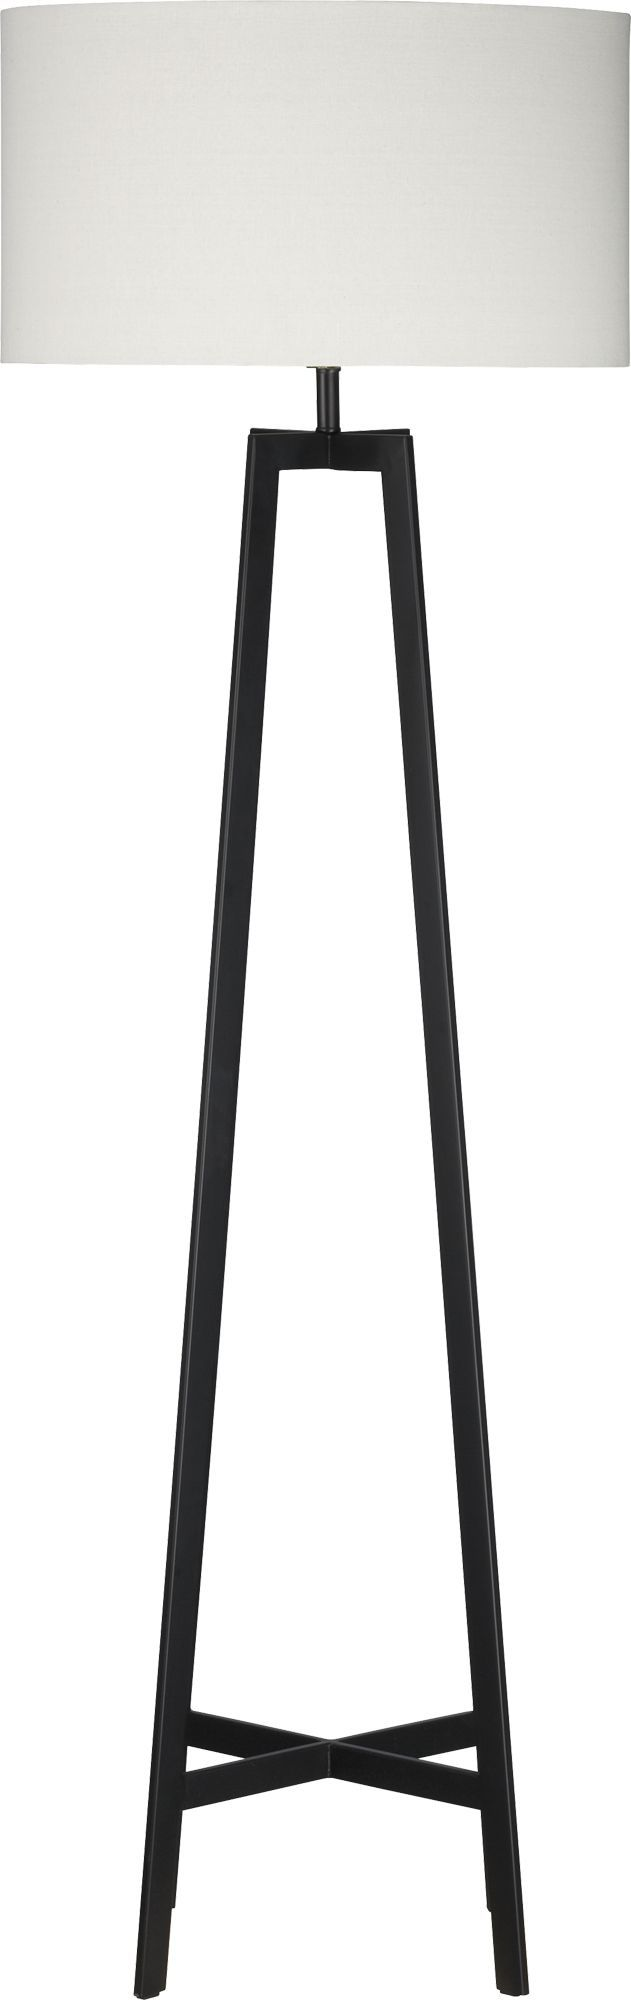 Castillo Black Floor Lamp  | Crate and Barrel